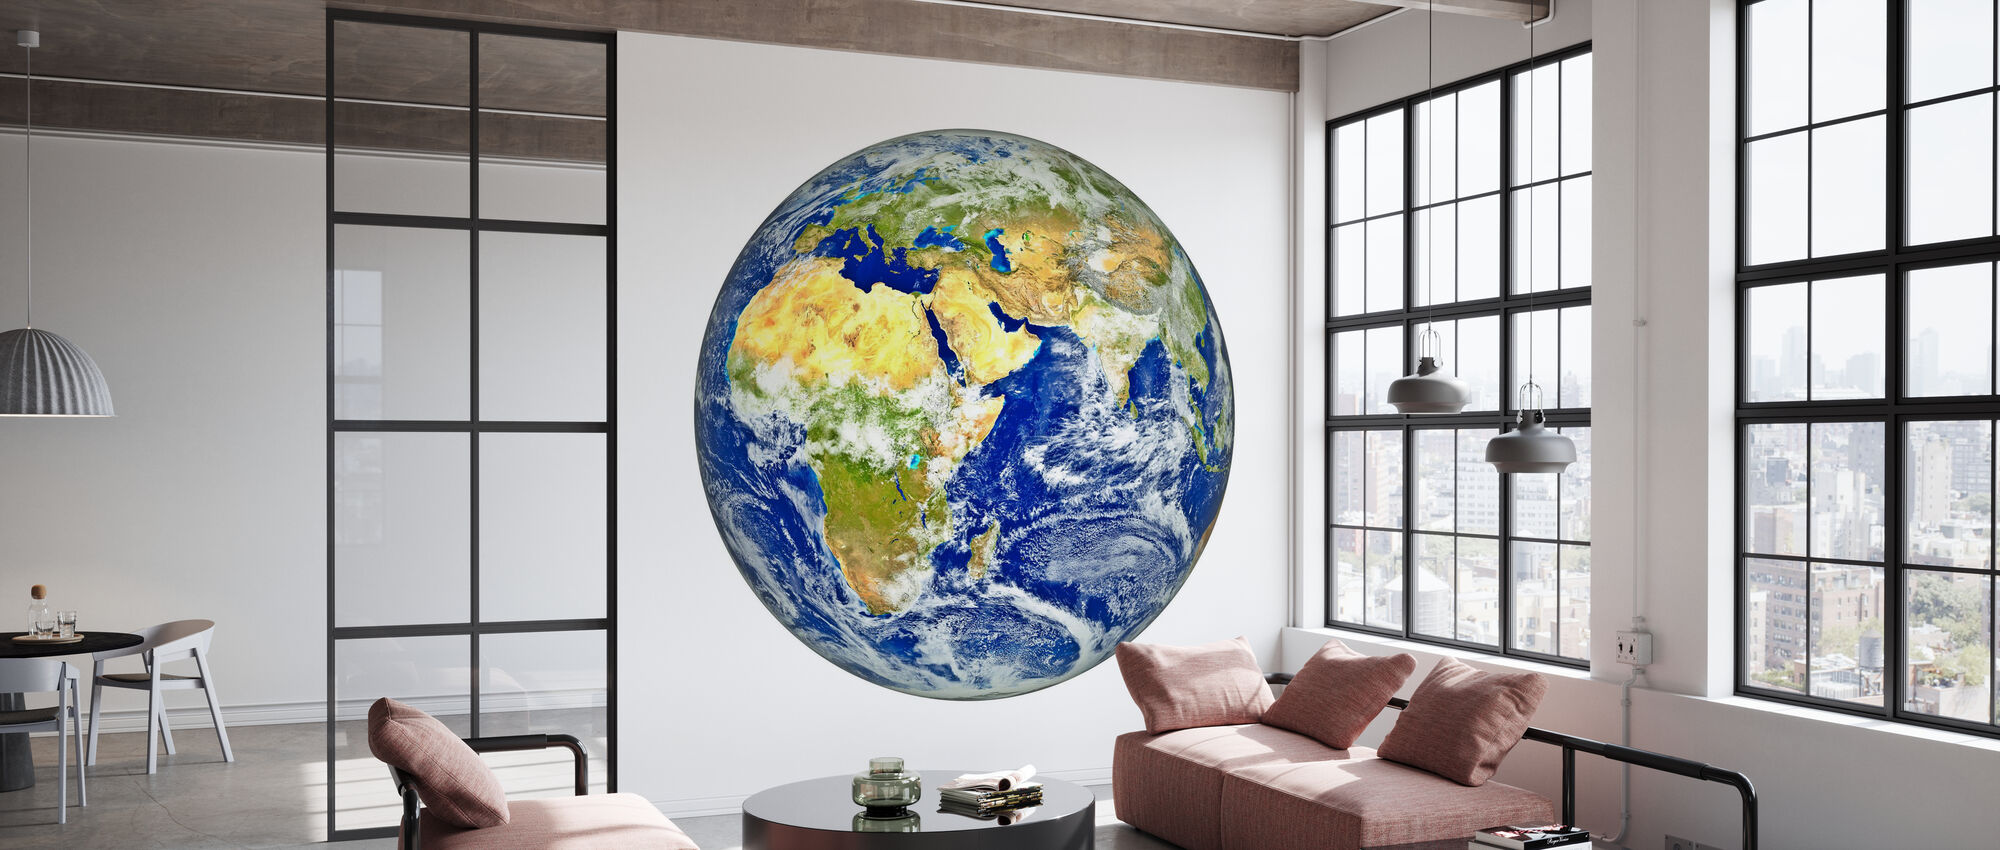 Earth with African and Asian Continent - Wallpaper - Office